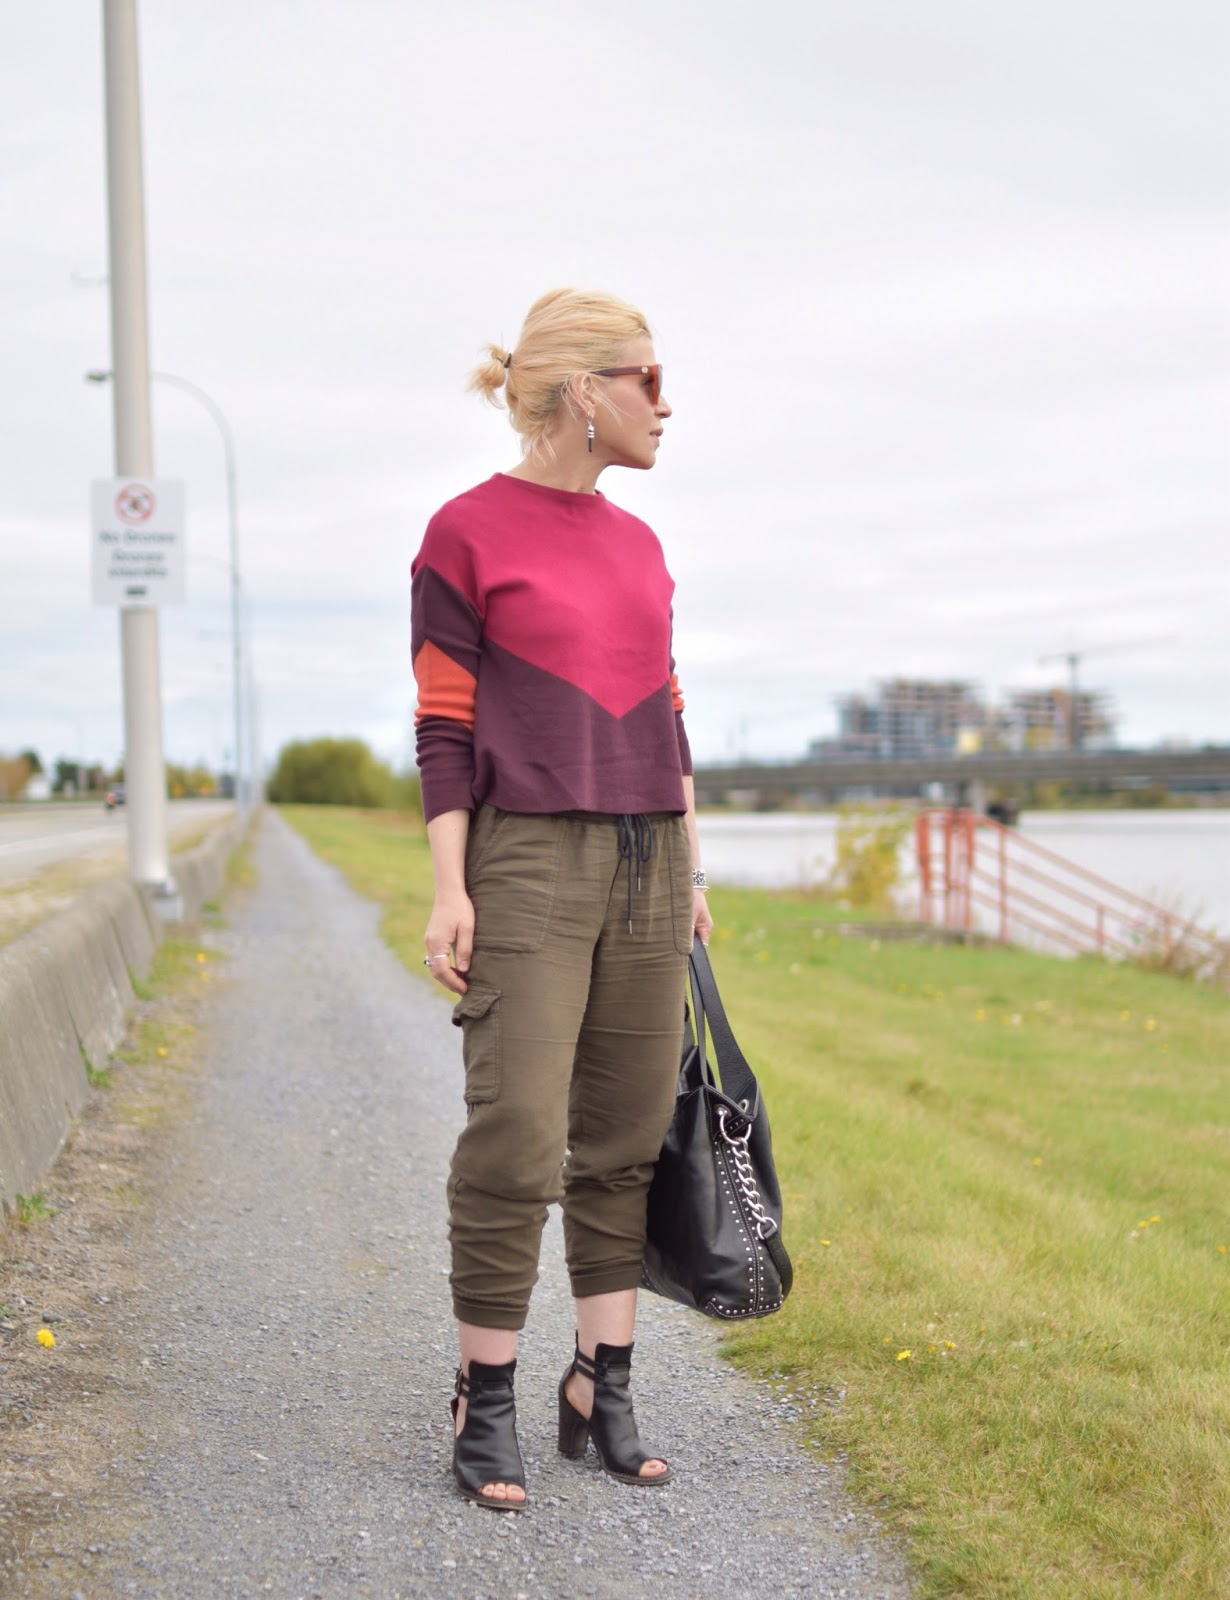 Gen X outfit inspiration c/o Monika Faulkner - colour-blocked sweater, cargo pants, cut-out booties, MK bag